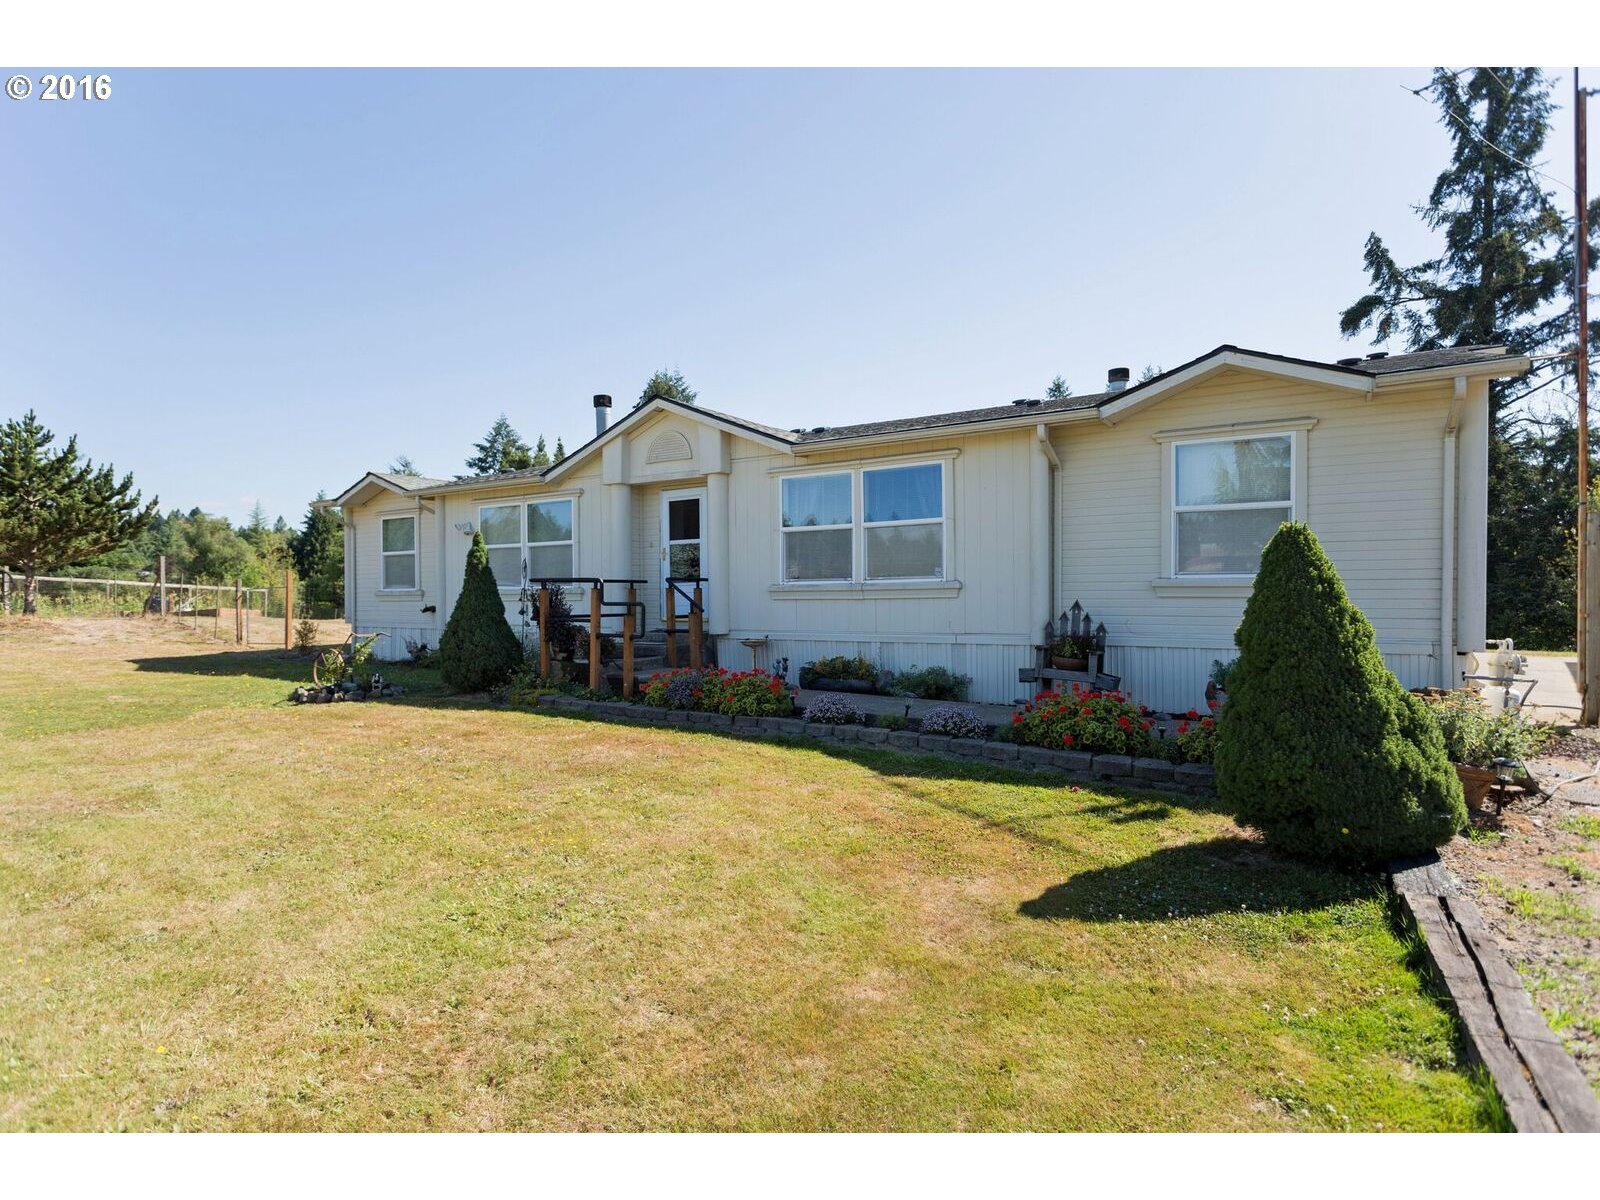 24800 SW Labrousse Rd Sherwood, OR 97140